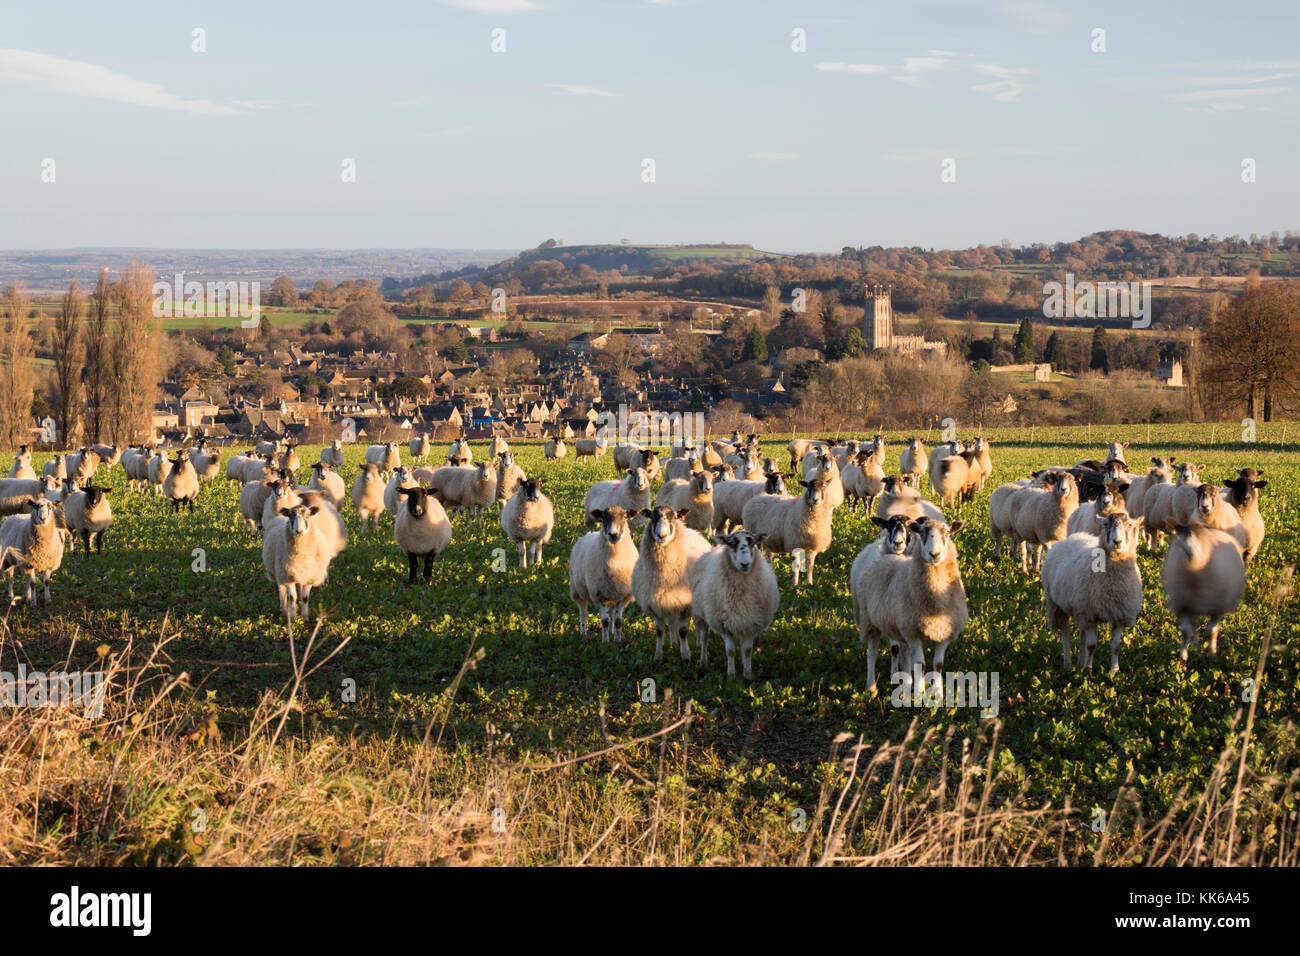 Sheep in field above Cotswold town of Chipping Campden with St James' church in winter, Chipping Campden, Cotswolds, - Stock Image